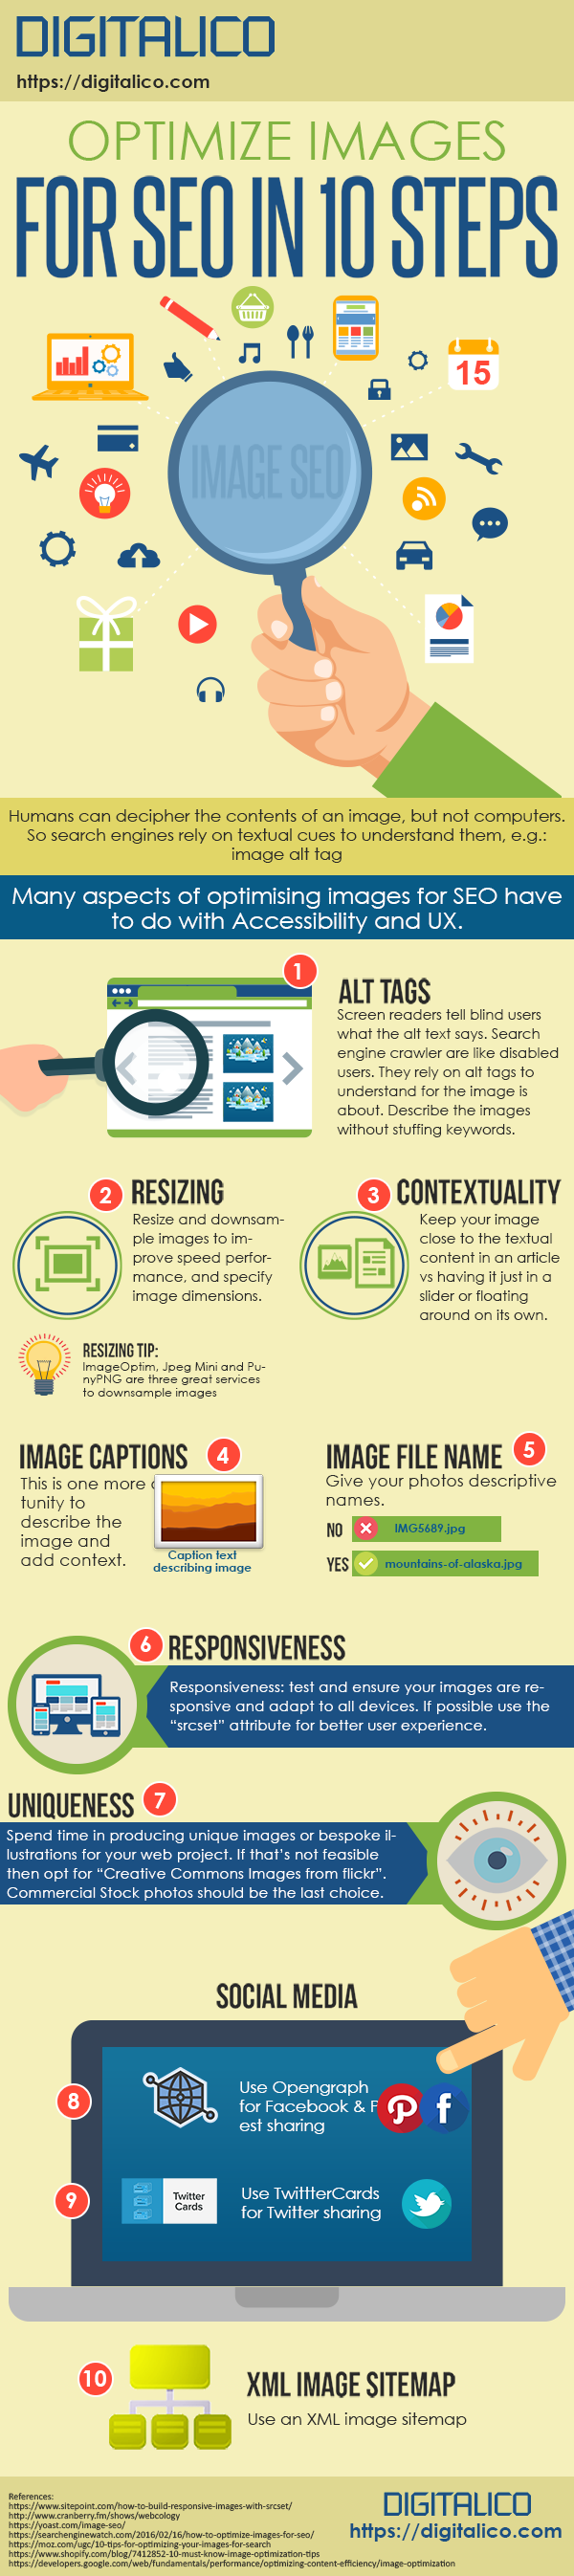 Image optimization for SEO, infographic - 600px